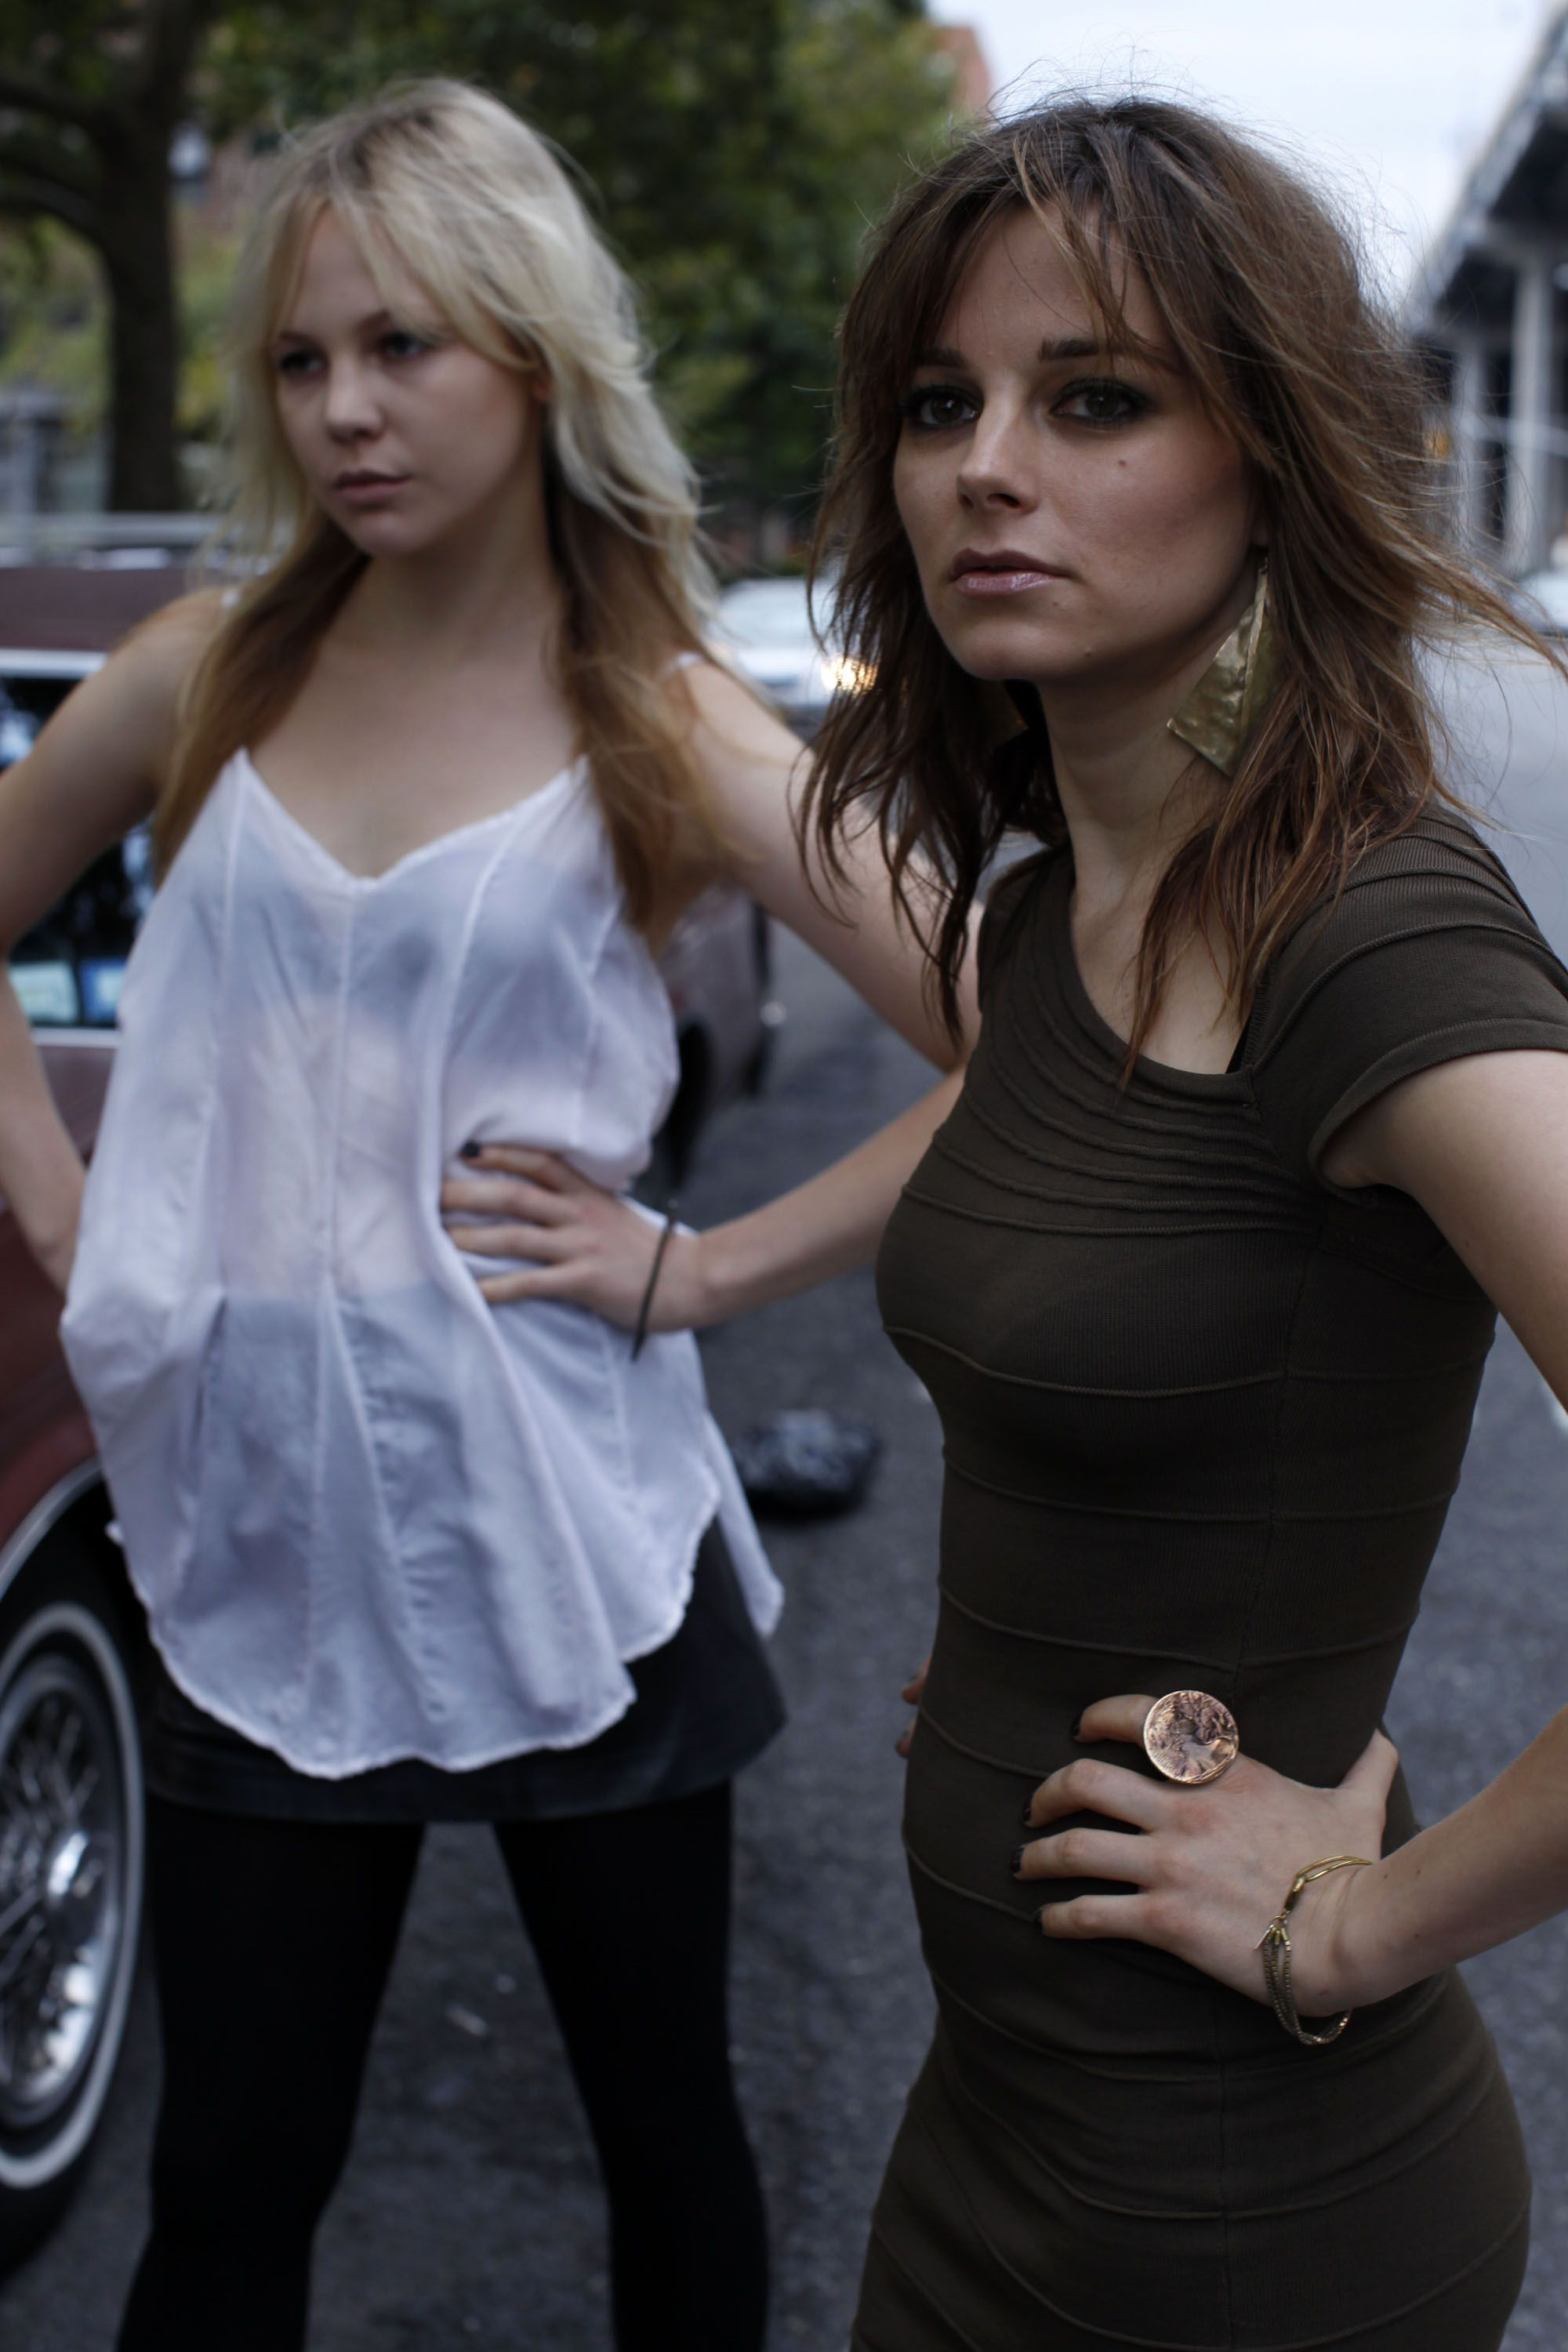 Bojana Novakovic And Adelaide Clemens In Phase 4 Film S Quot Generation Um Quot 2013 Bo J A N A